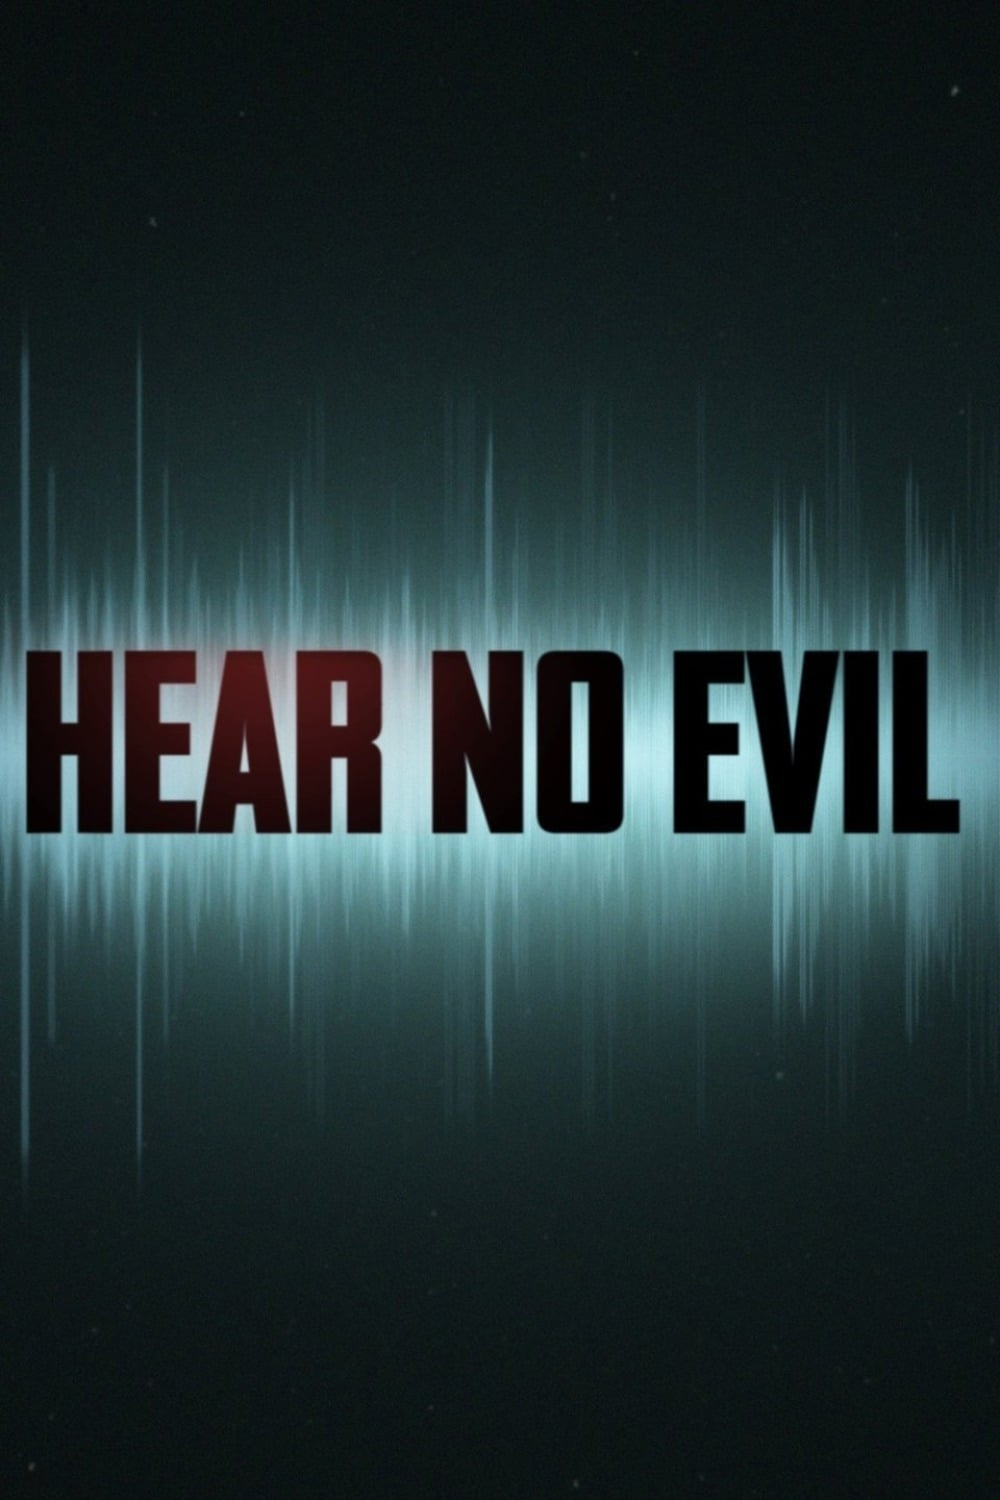 HEAR NO EVIL SEASON 1 putlocker 4k